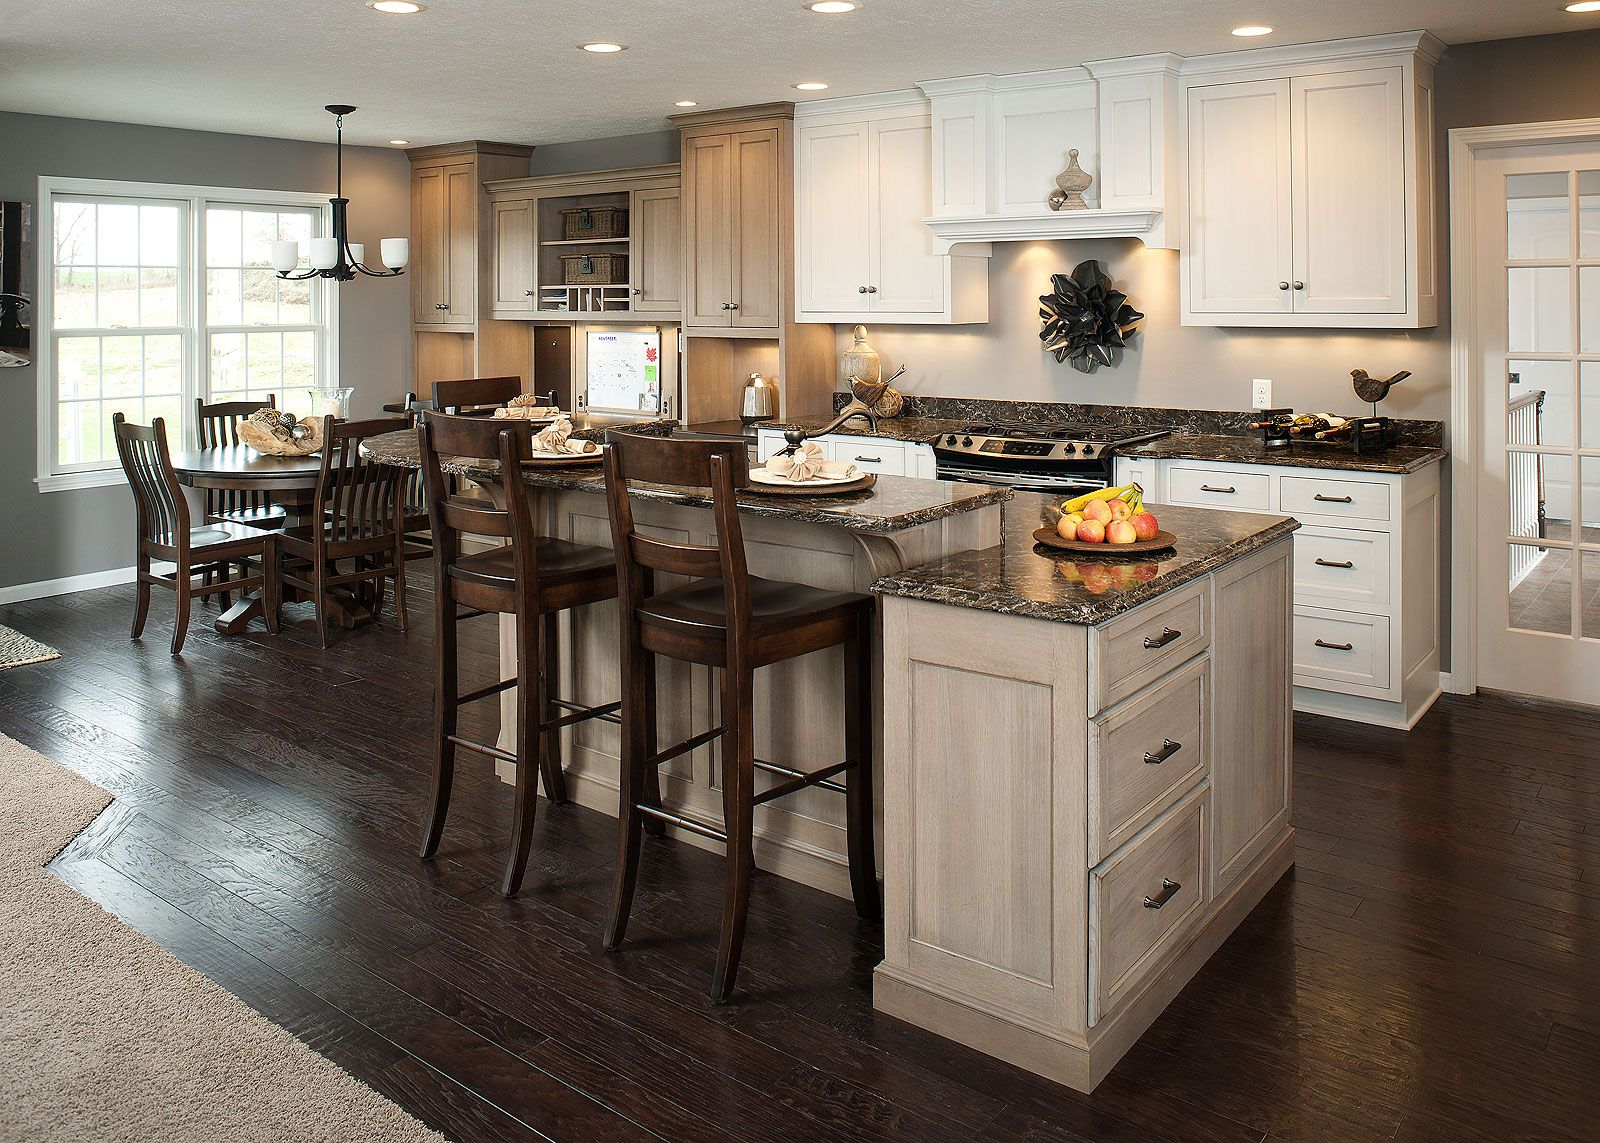 Add your kitchen with kitchen island with stools midcityeast for Best kitchen stools